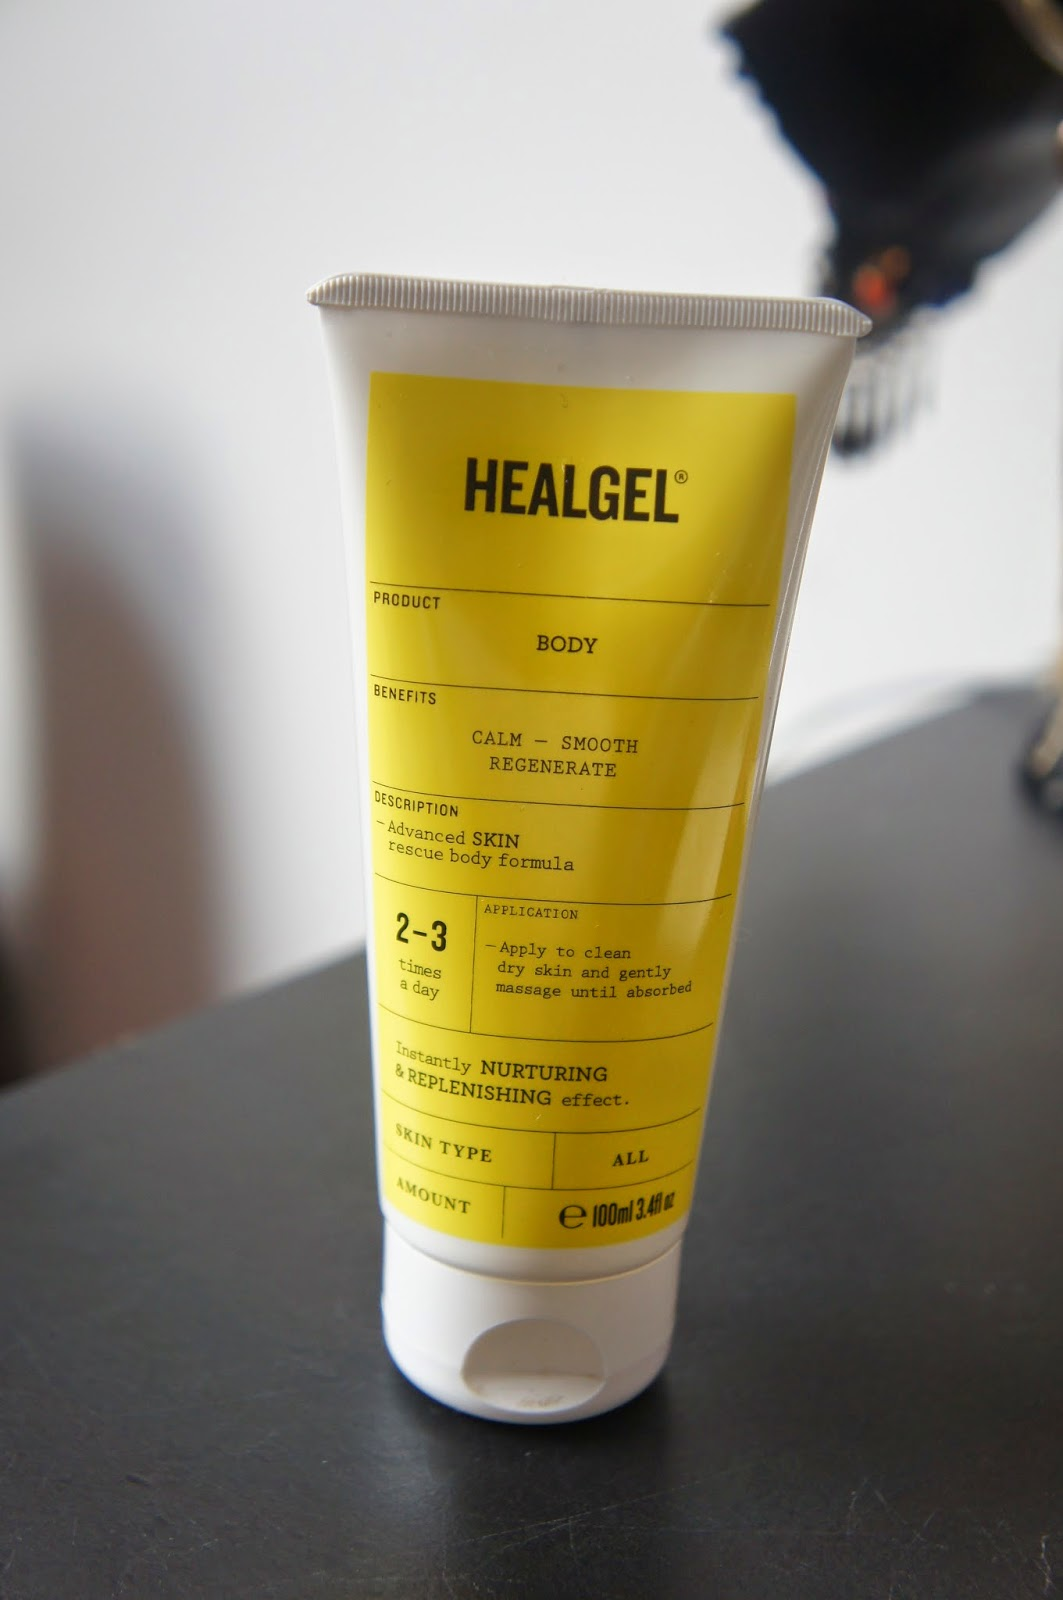 Healgel Body Review~ Calming, Smoothing And Regenerating